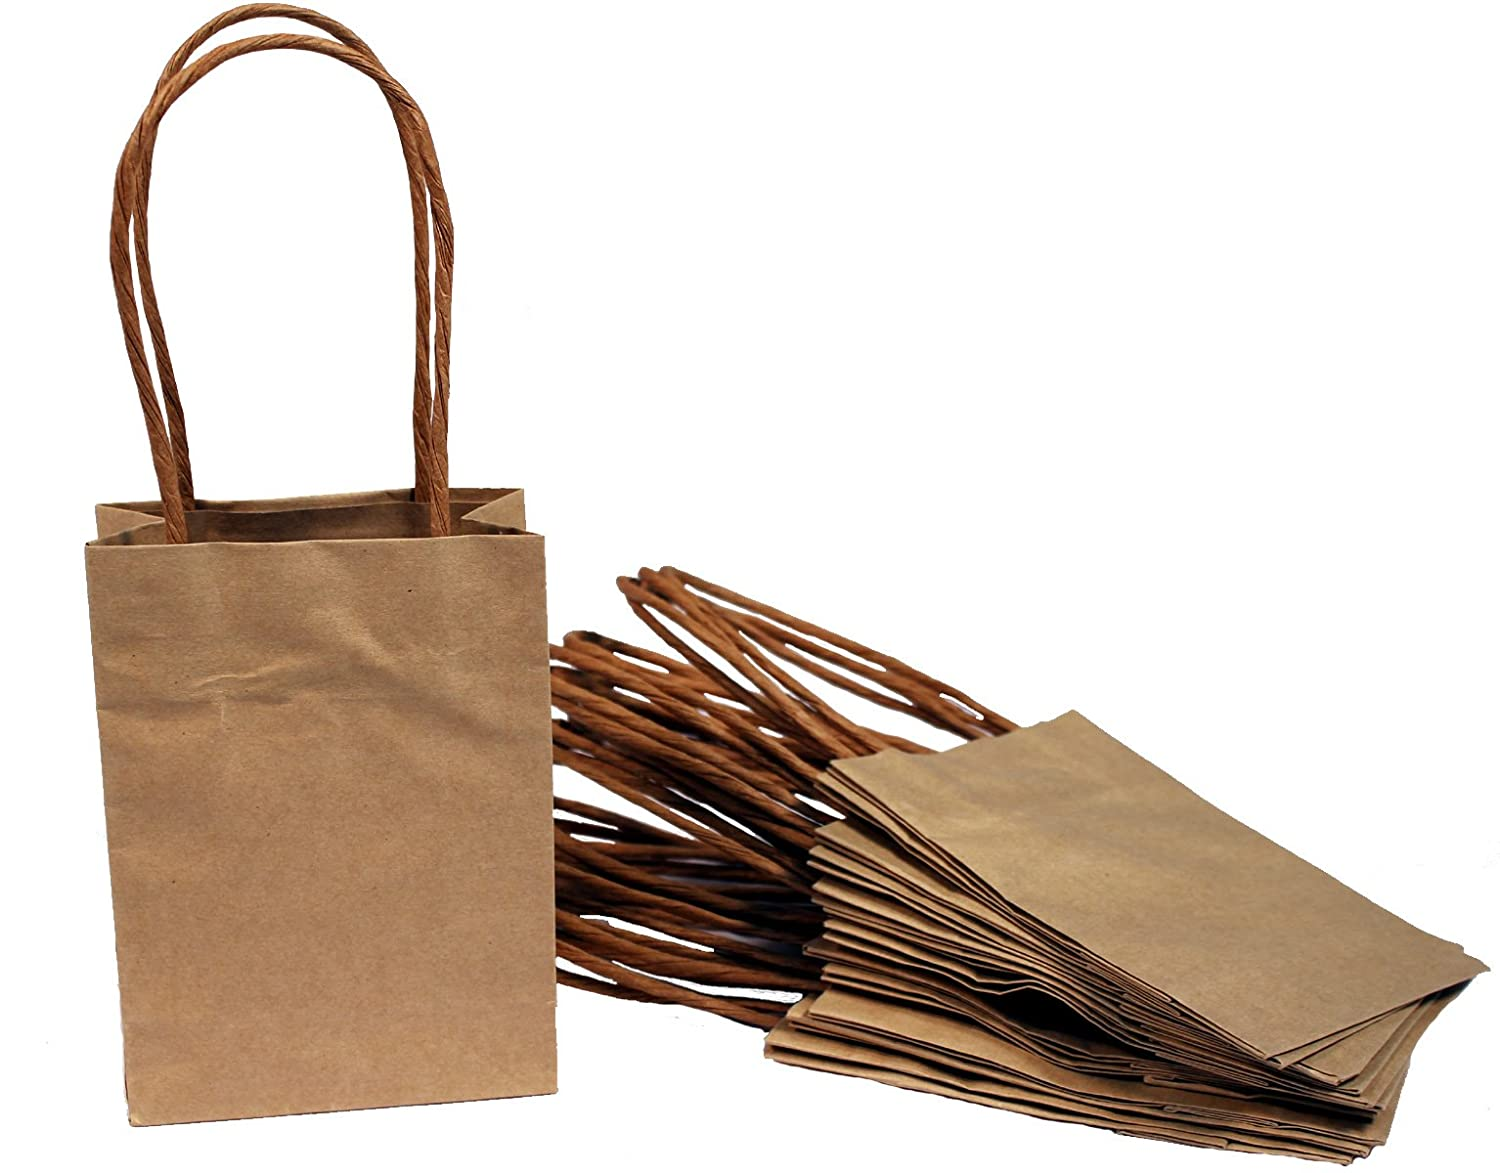 Amazon.com: Creative Hobbies Small Kraft Paper Gift Handle Bags ...